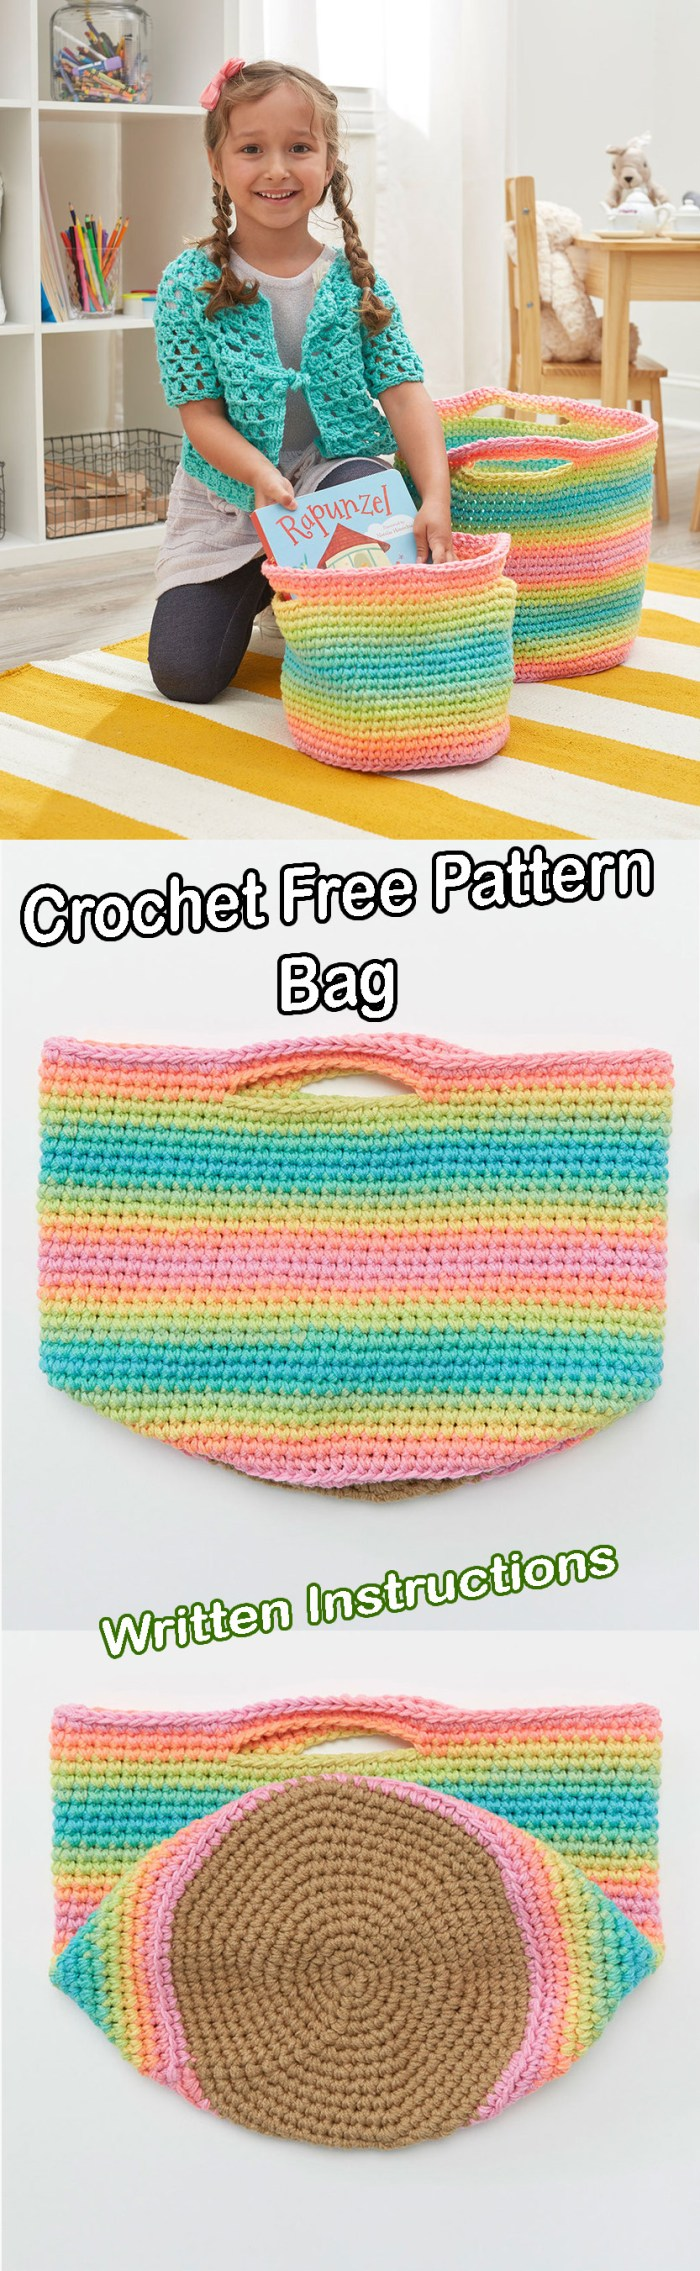 Crochet Bag for Women and Children - Crafts Free Pattern